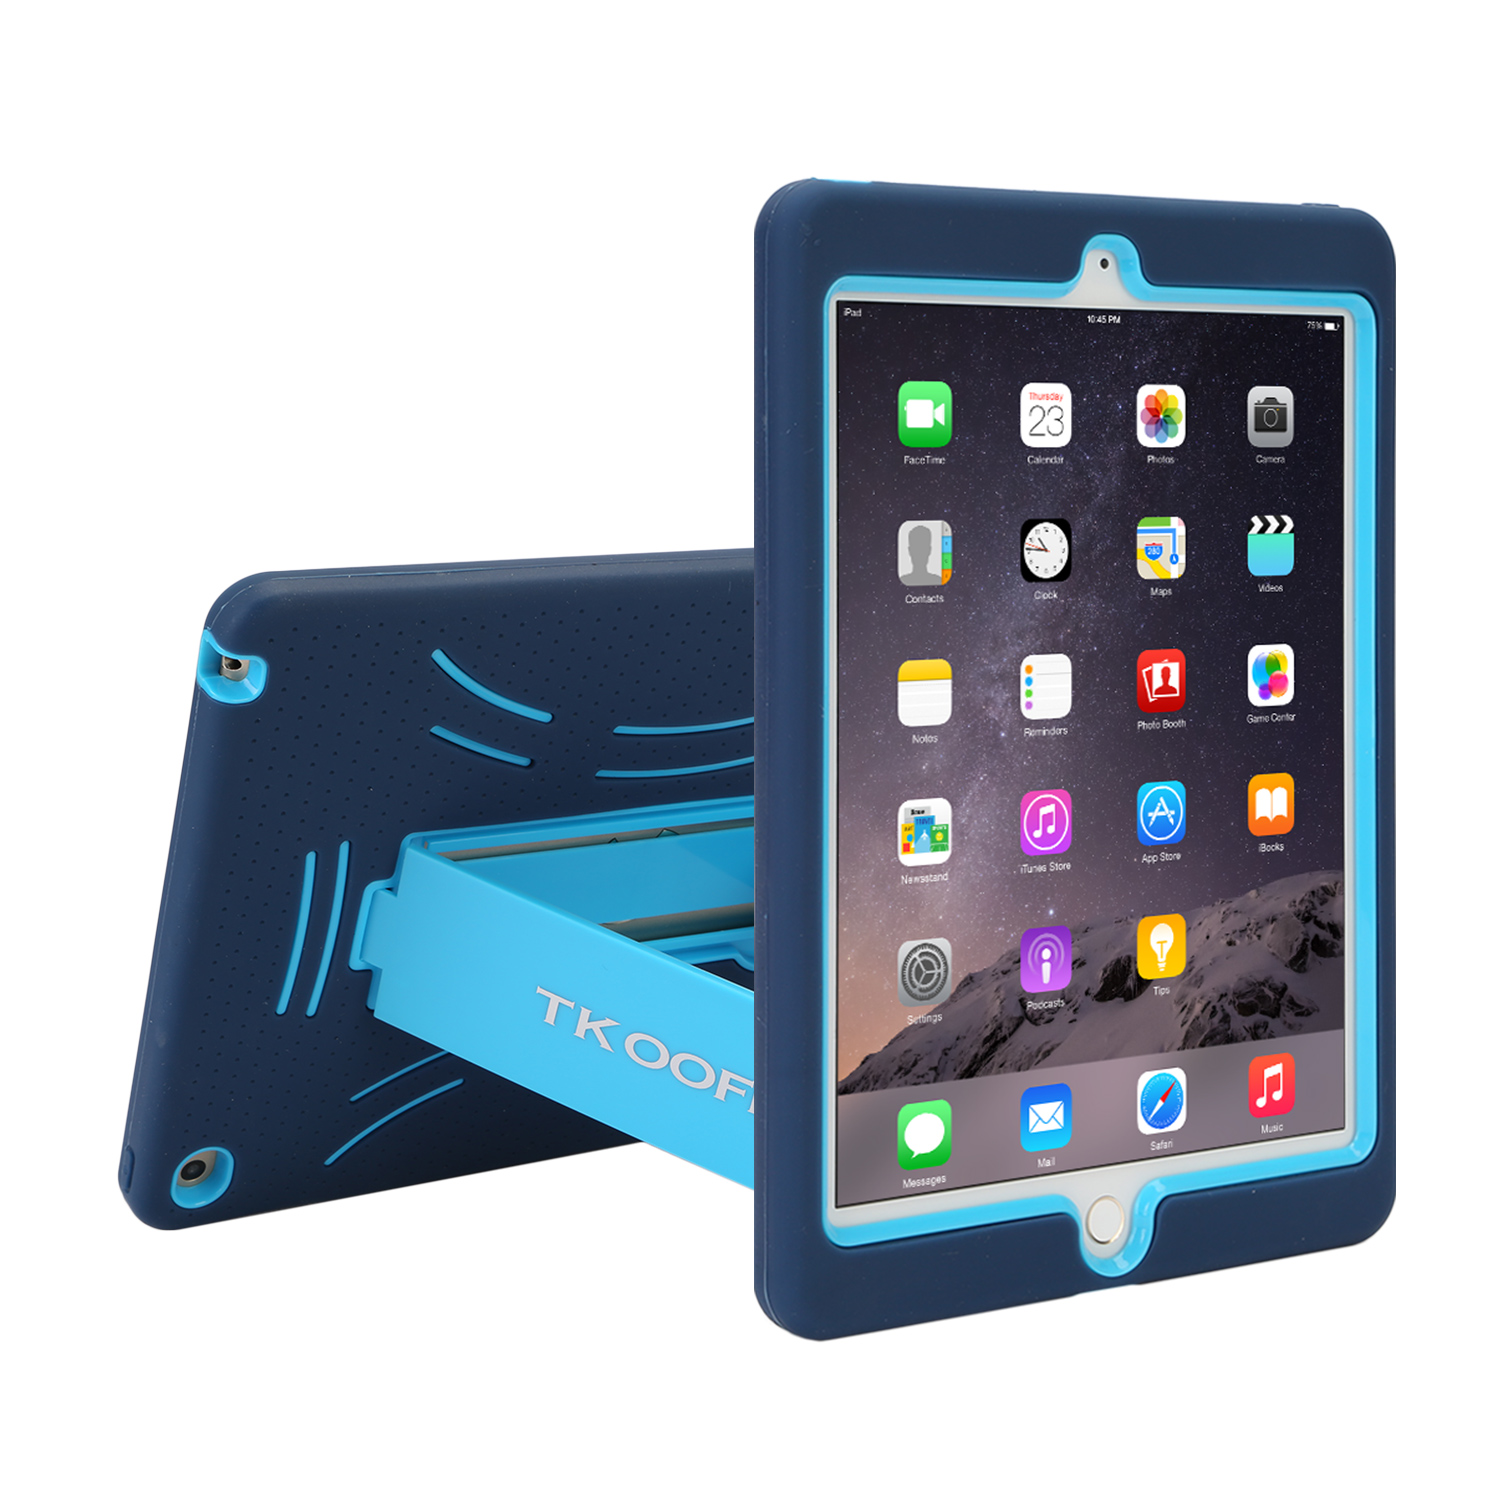 kids heavy duty shock proof case cover for ipad mini. Black Bedroom Furniture Sets. Home Design Ideas